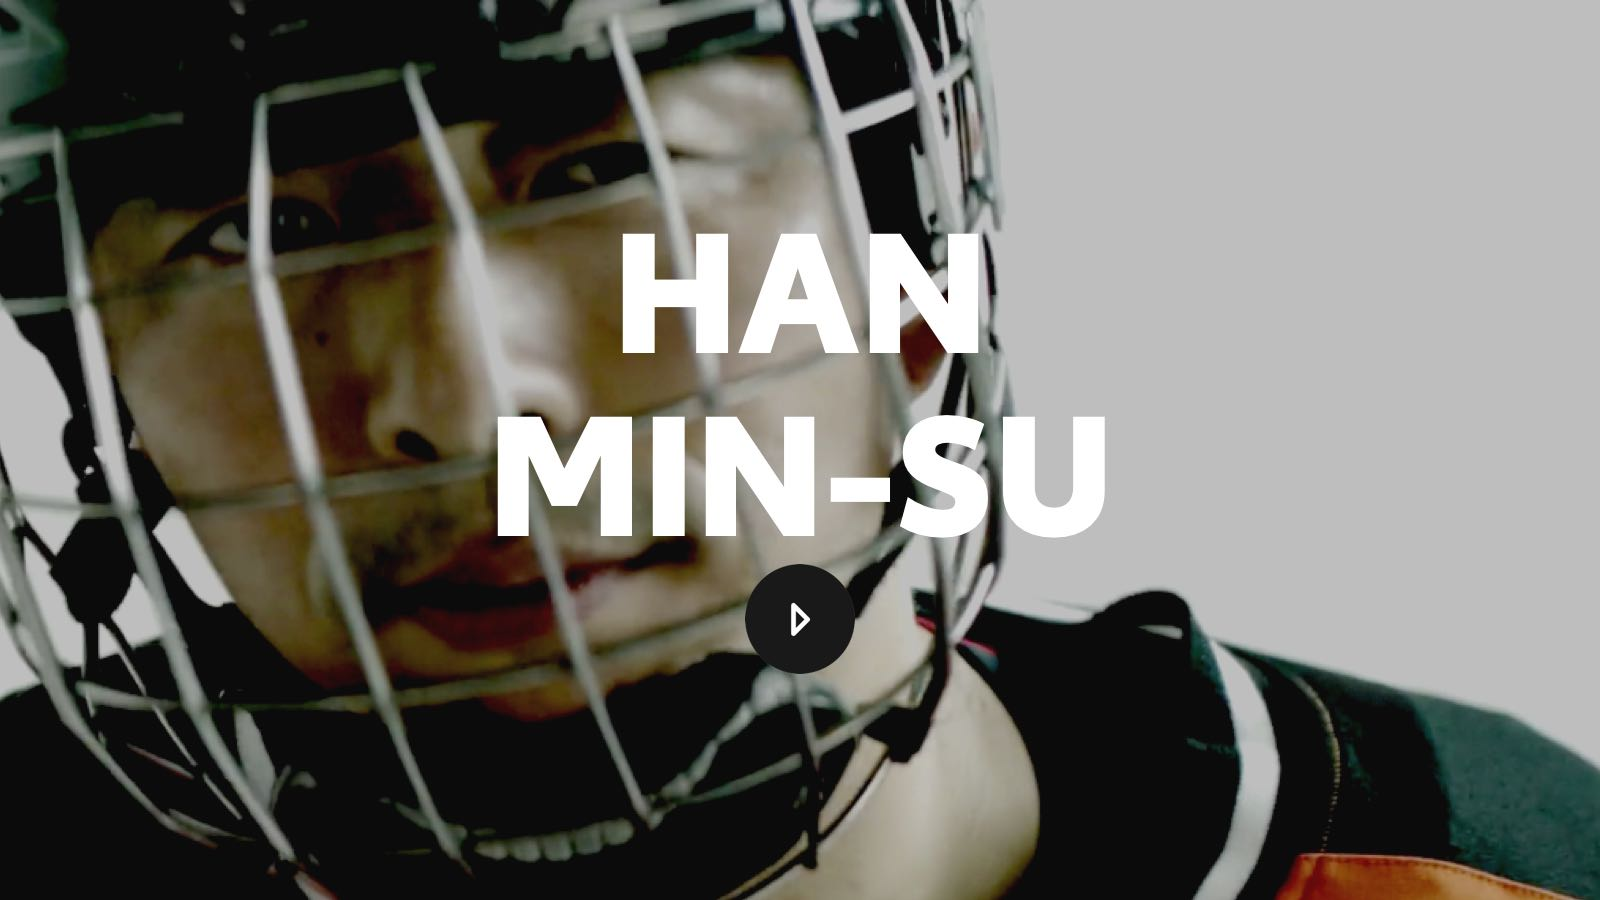 Han Min-Su looks ready to compete behind the cage of his hockey facemask.